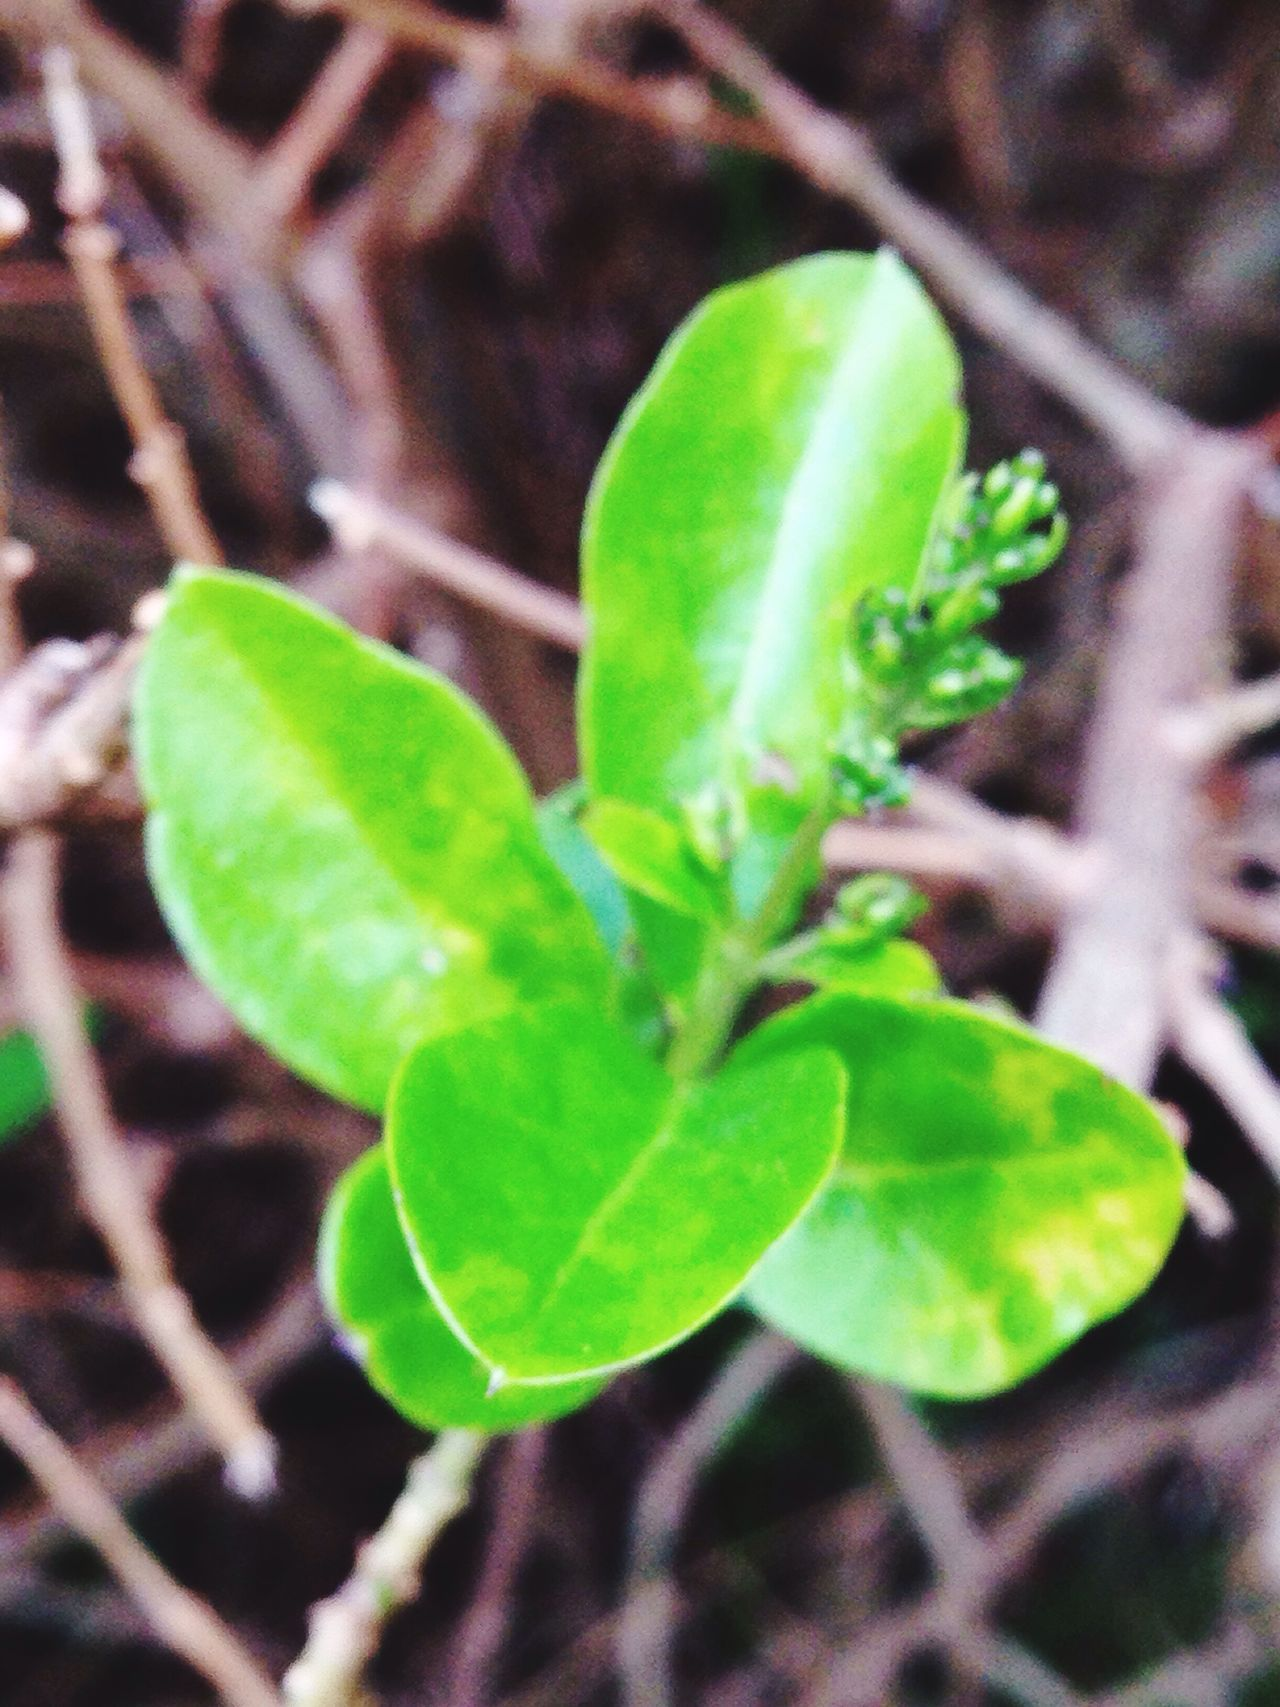 Plant Growth Green Color Leaf Nature Close-up Tendril No People Green Beginnings New Life Beauty In Nature Day Outdoors Fragility Freshness Animal Themes Privet